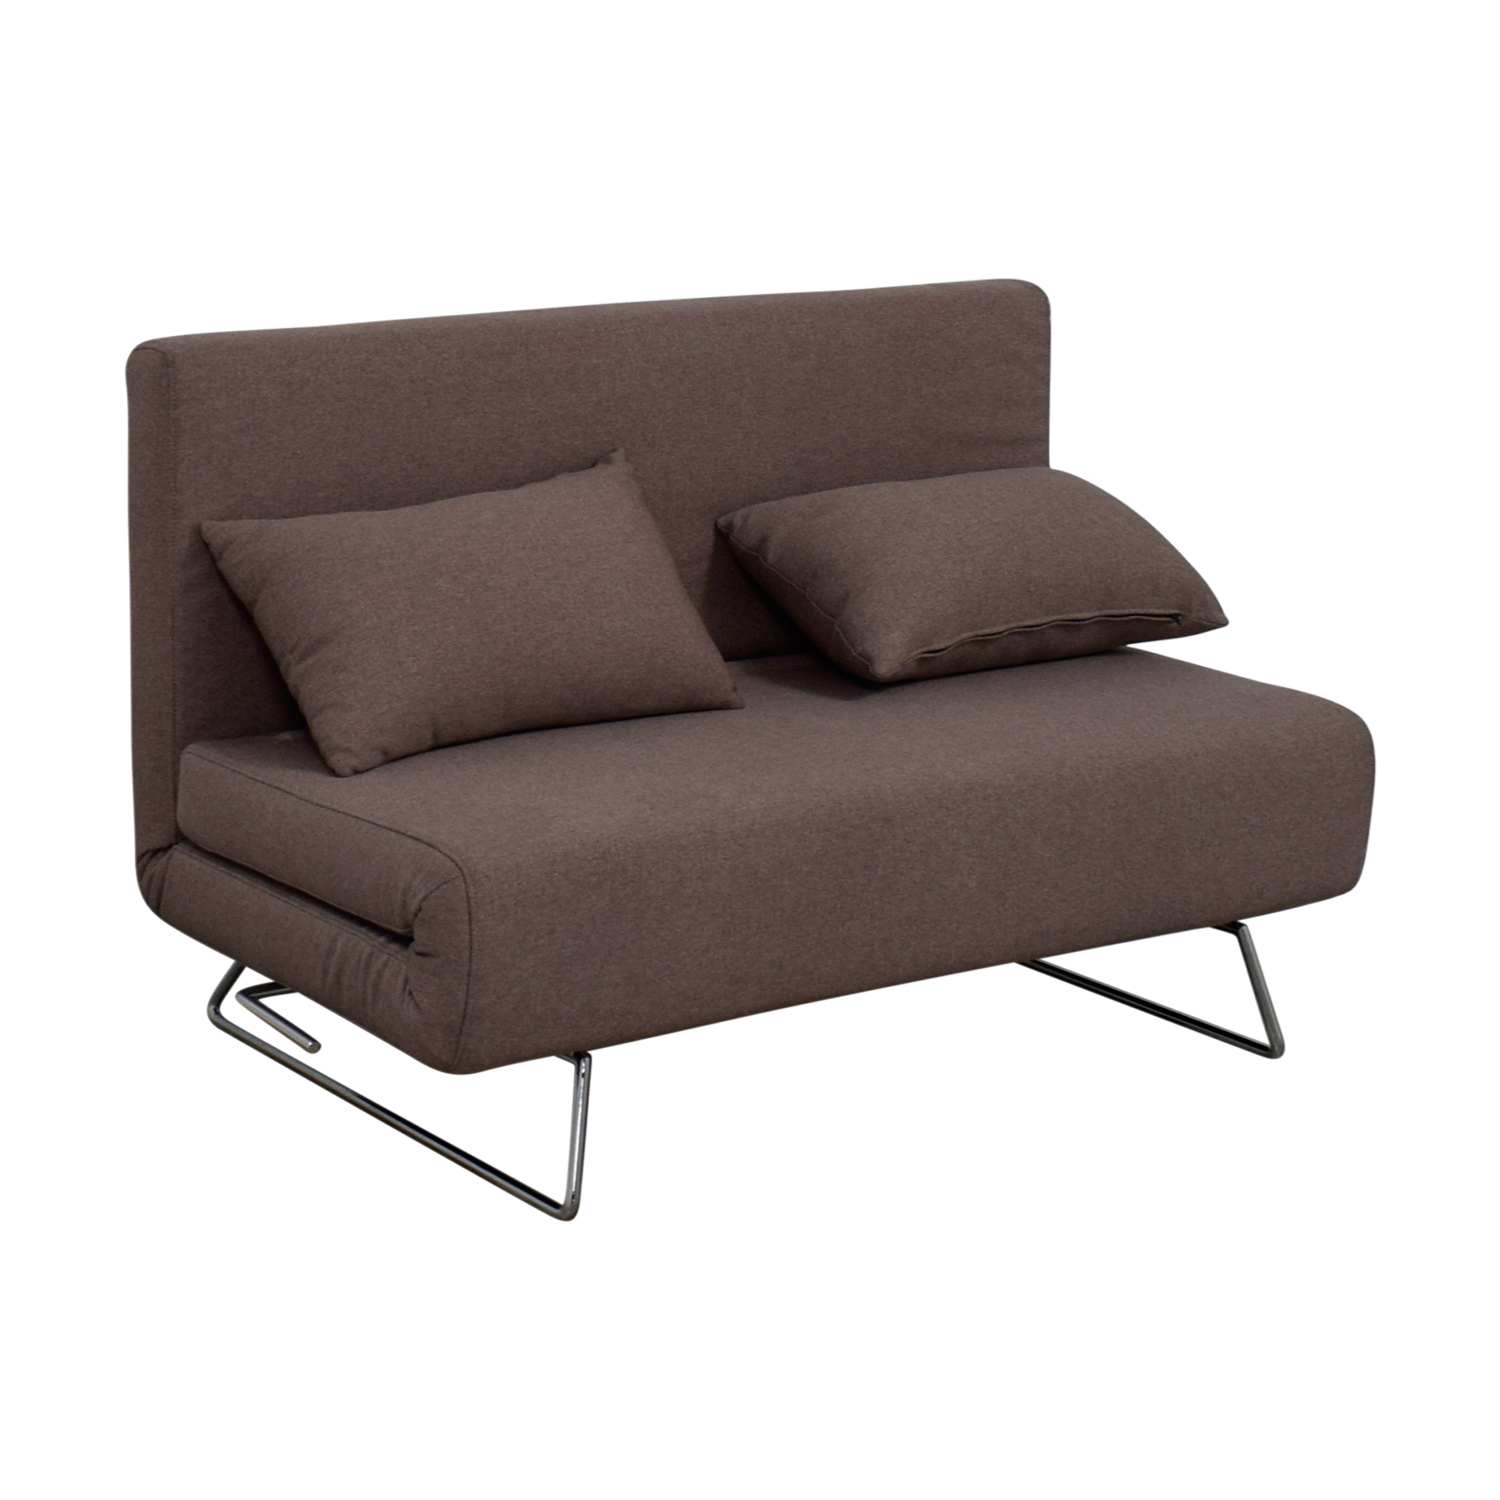 All Modern Gray Convertible Futon Chaises